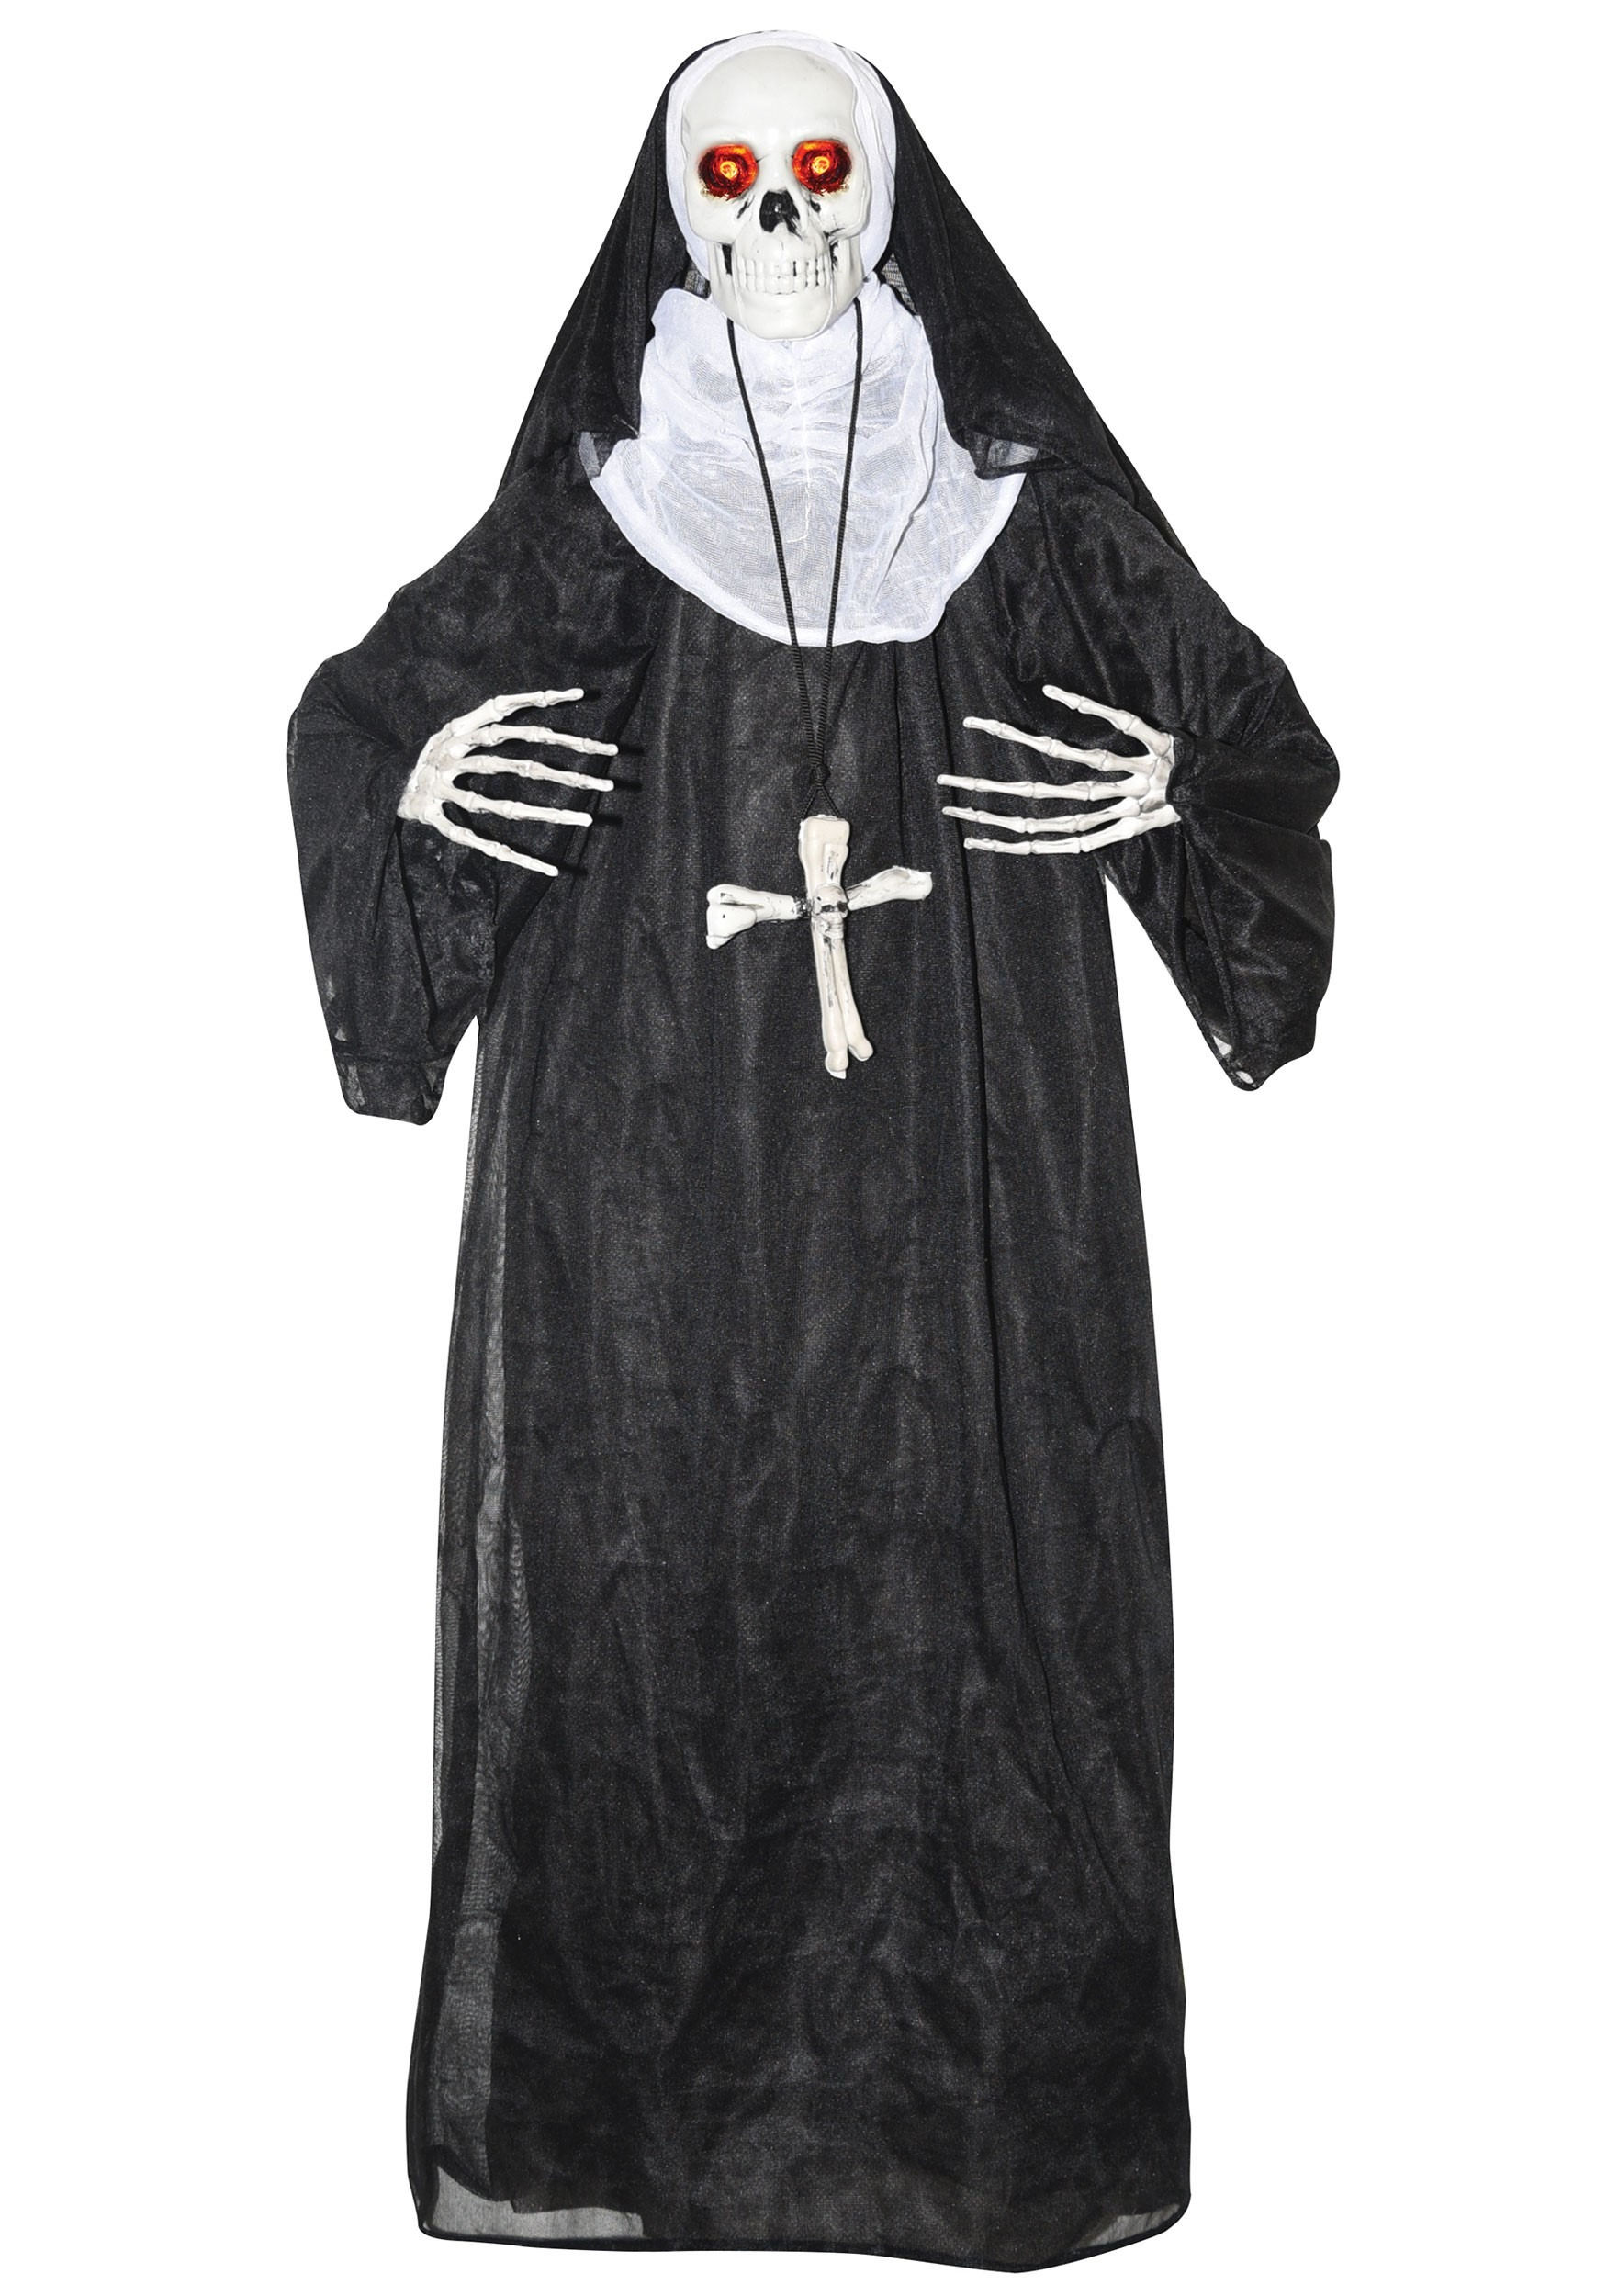 Animated Nun Prop Halloween Decoration